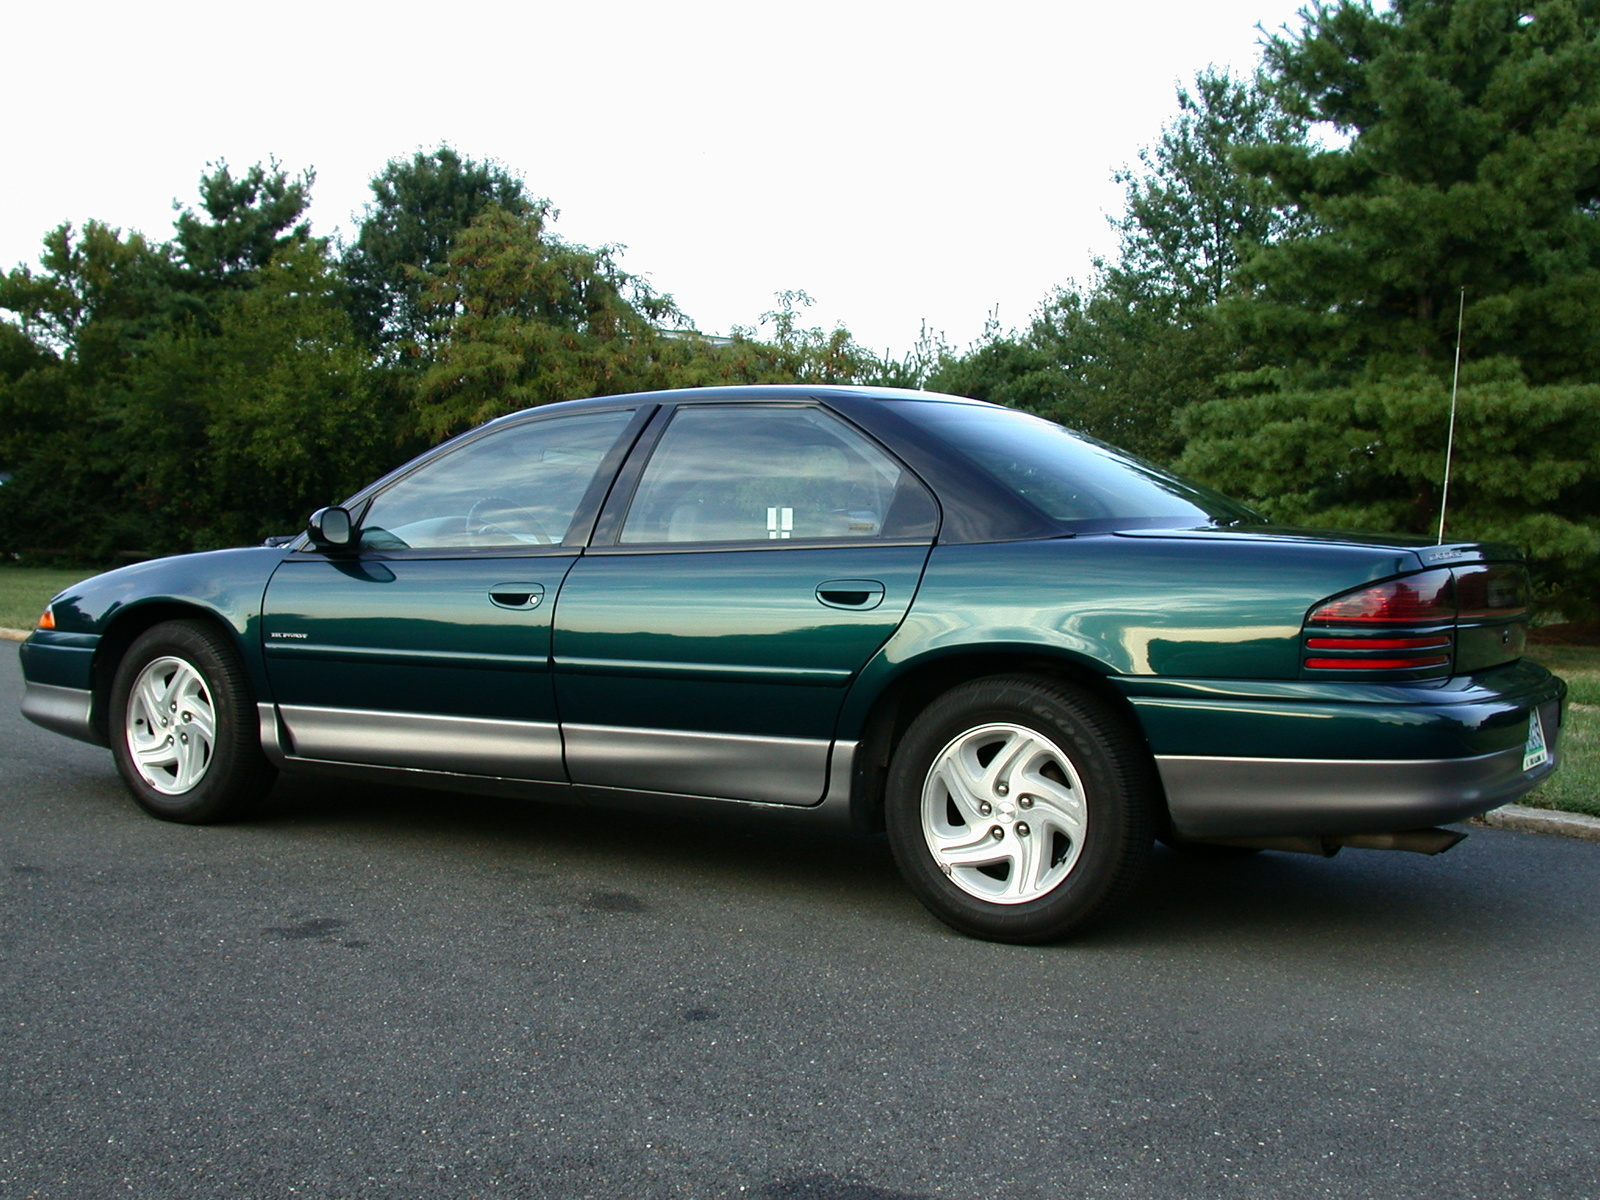 1994 Dodge Intrepid #6